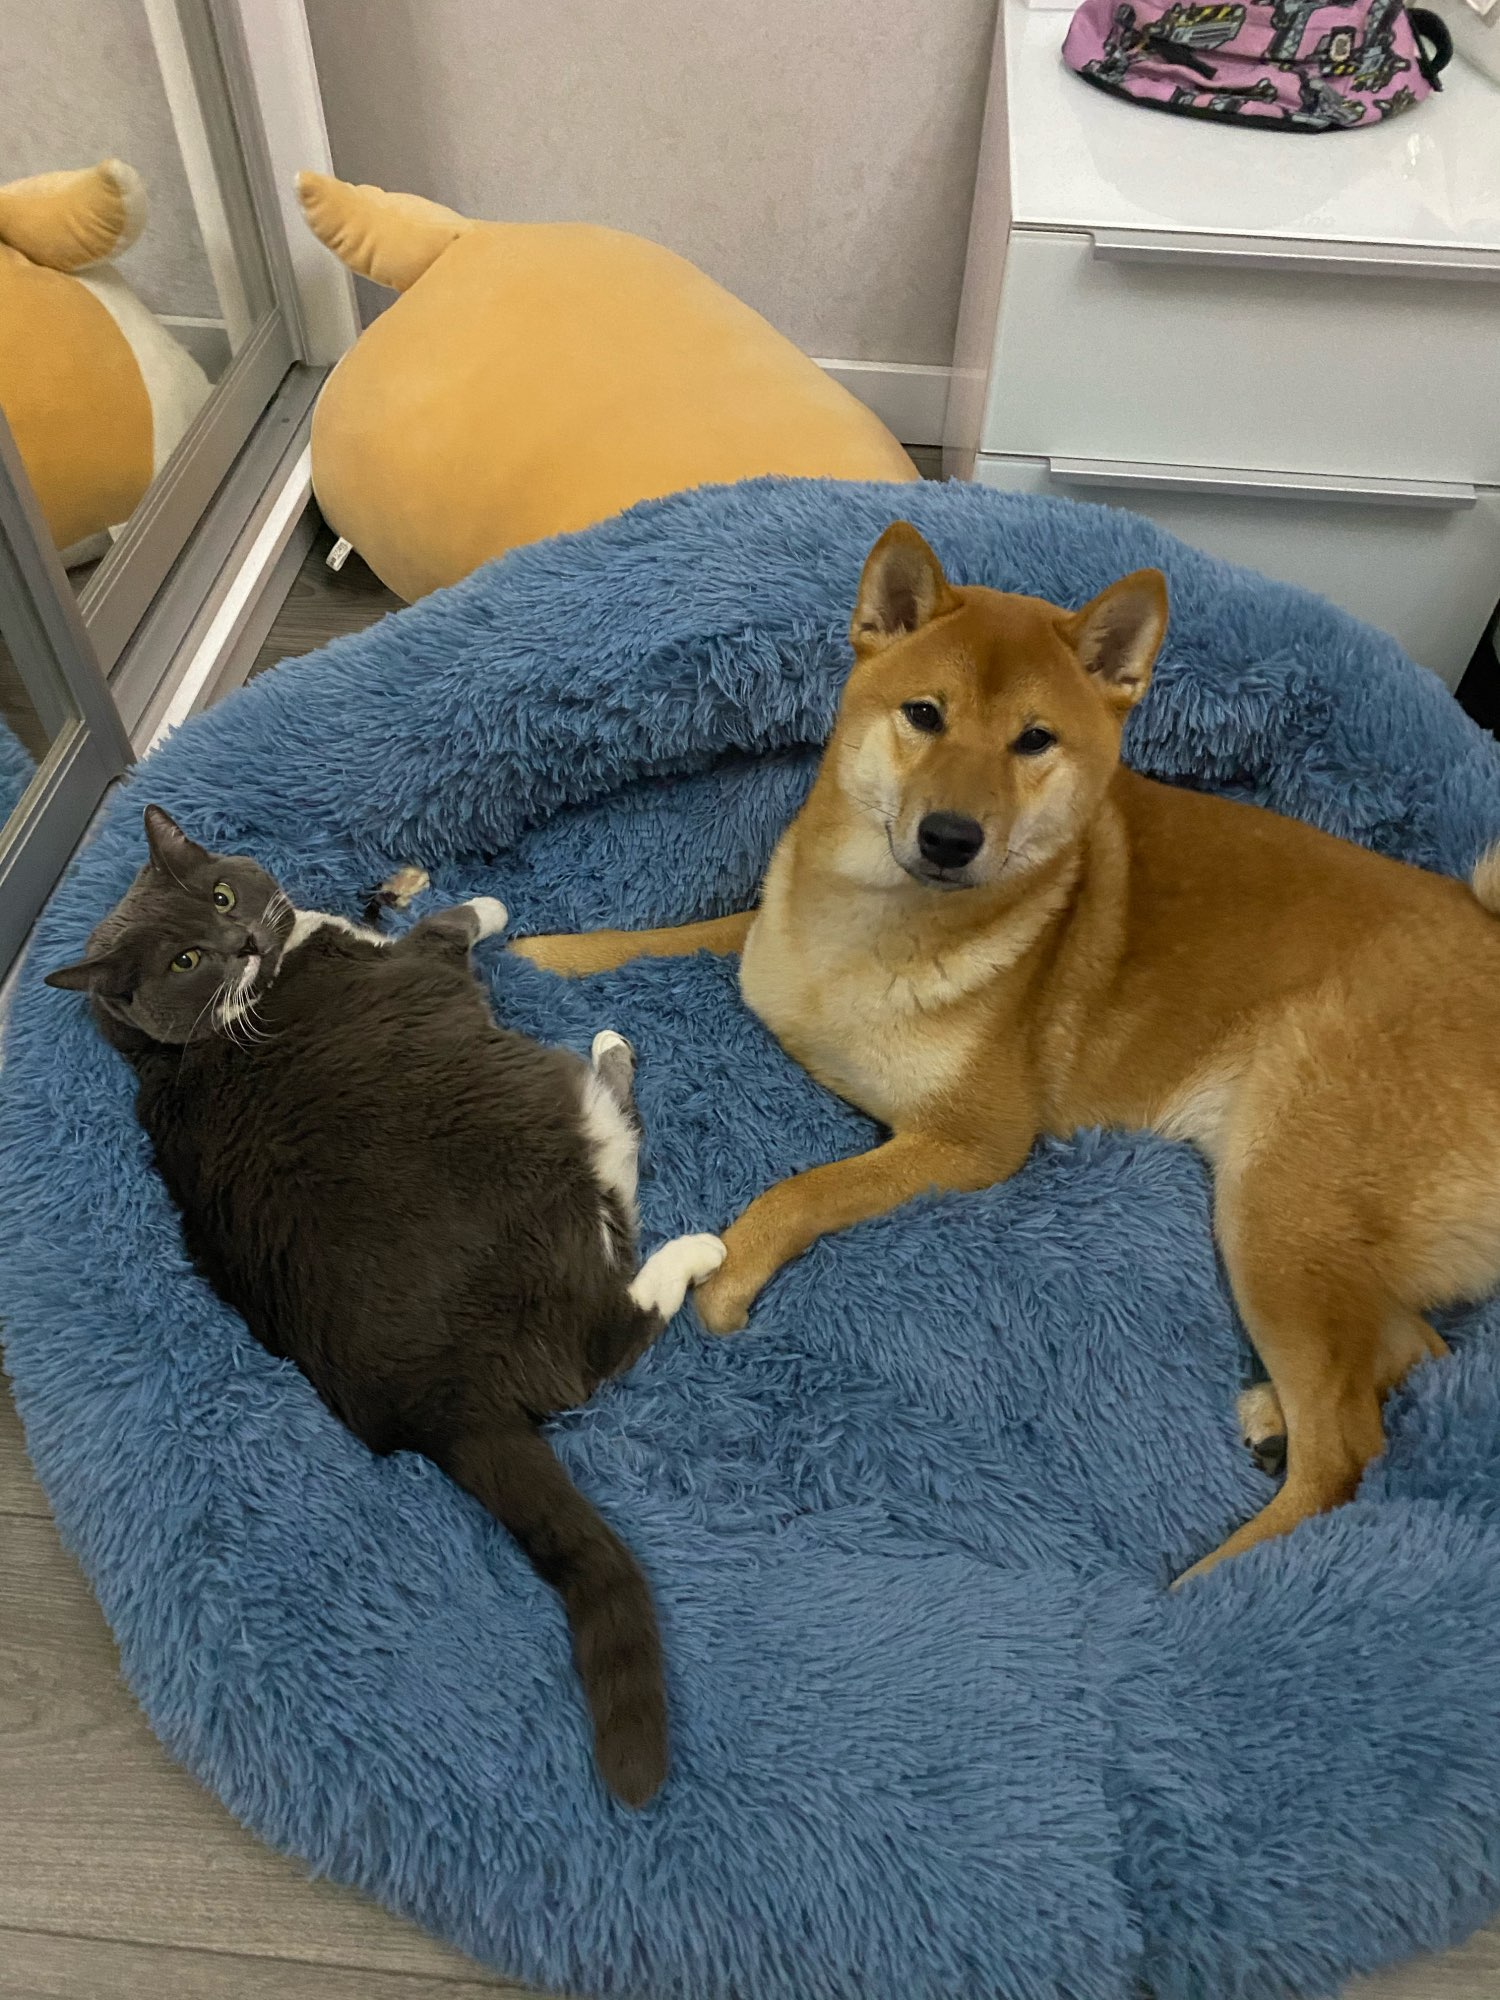 Warm and super soft dog bed, fuzzy winter cat bed, fluffy and cozy